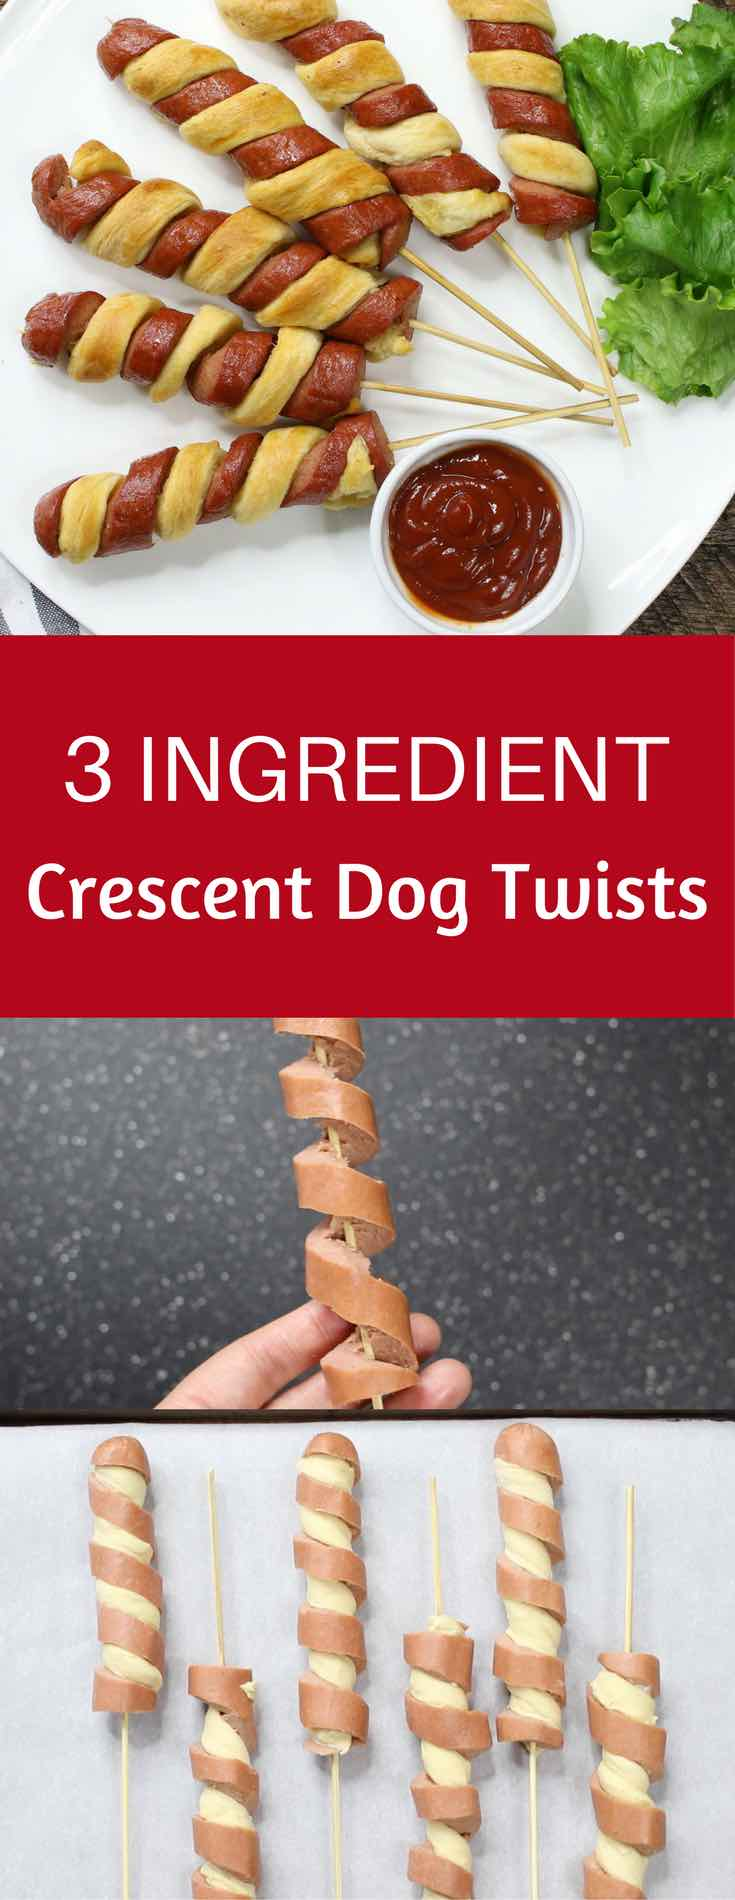 3 Ingredient Crescent Dog Twists – a super easy and kid friendly snack that comes together in minutes and is a guaranteed hit. All you need is 3 simple ingredients: hot dogs, crescent roll dough and egg wash. It's great for parties and is so yummy! Video recipe. | tipbuzz.com